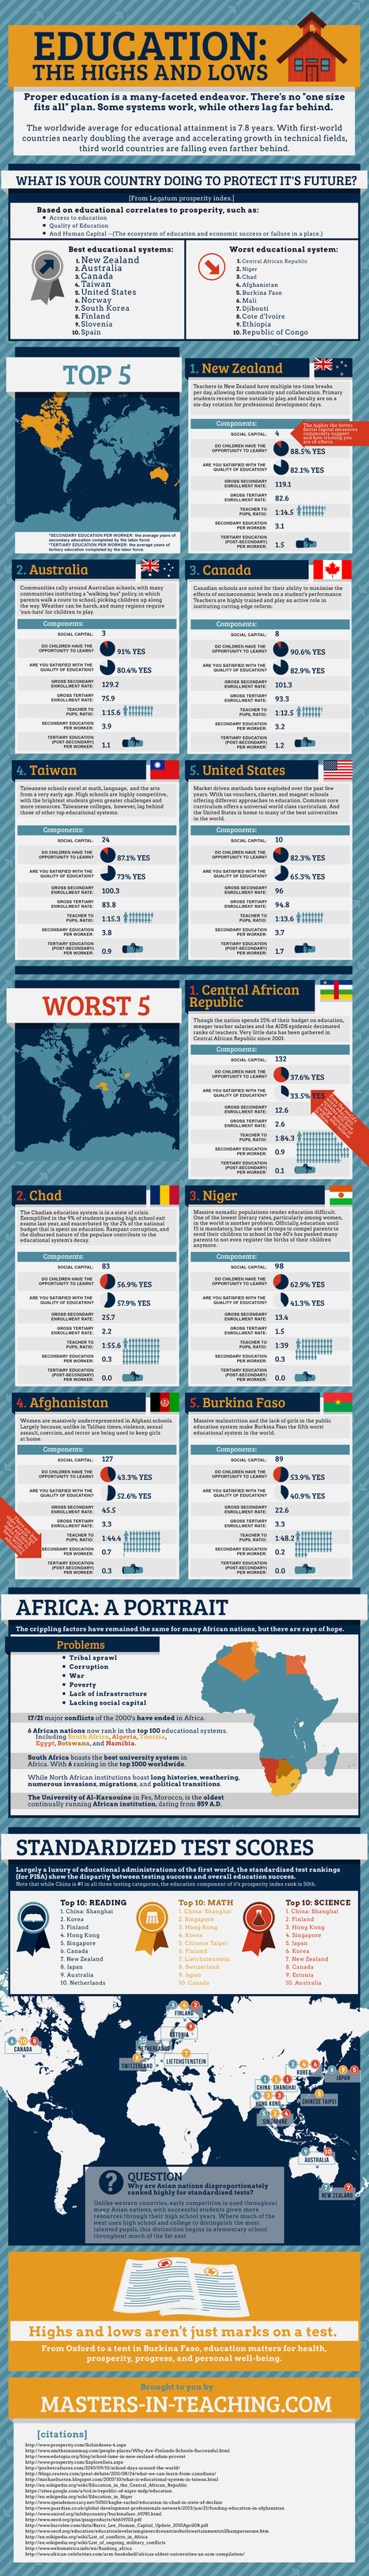 Education: The Highs And Lows [INFOGRAPHIC] #education #highs #lows | g-tech | Scoop.it